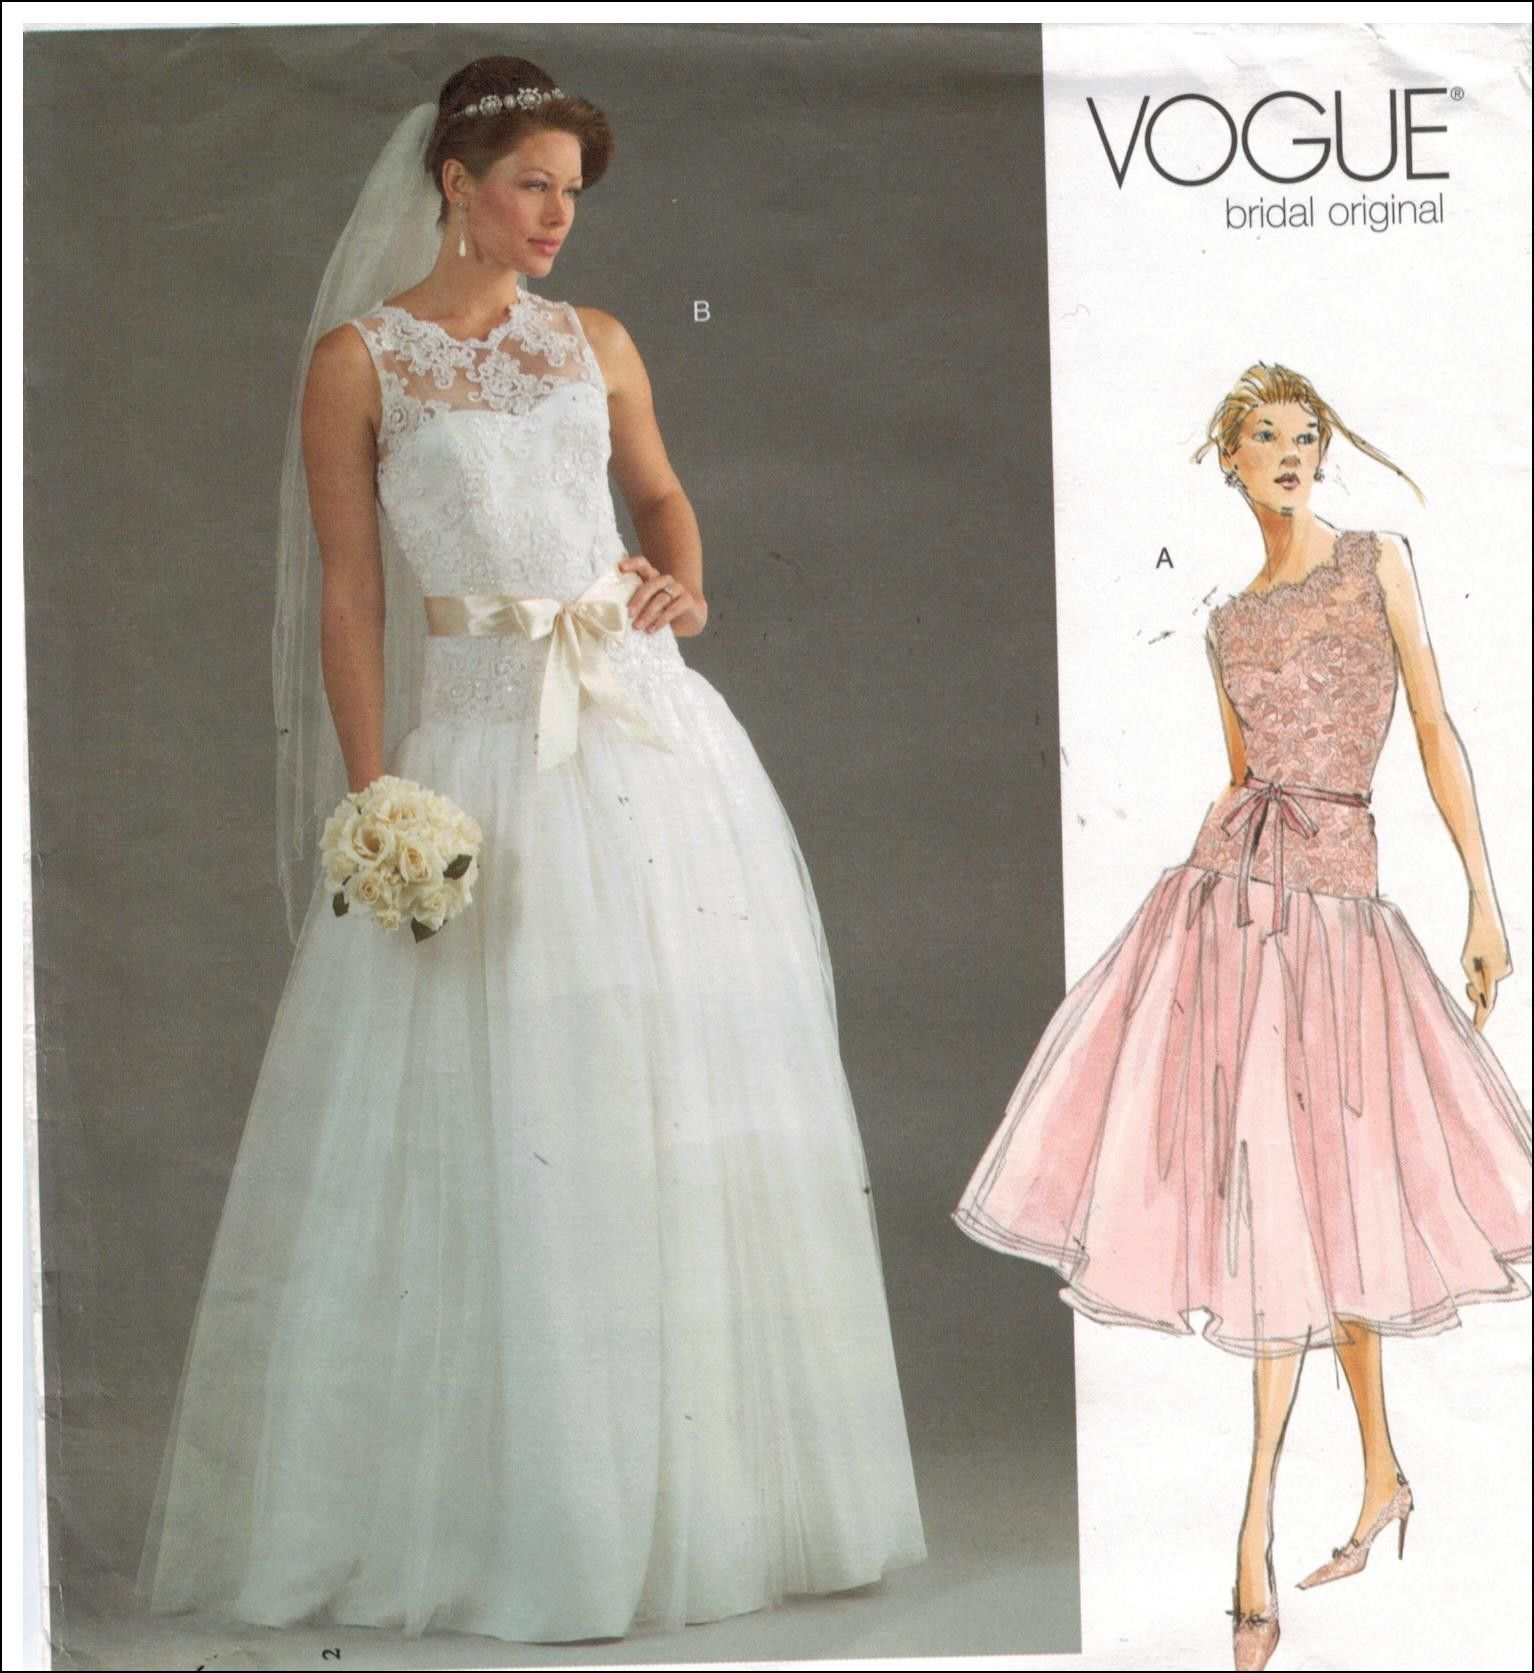 Vogue bridesmaid dress patterns dresses and gowns ideas vogue bridesmaid dress patterns ombrellifo Images